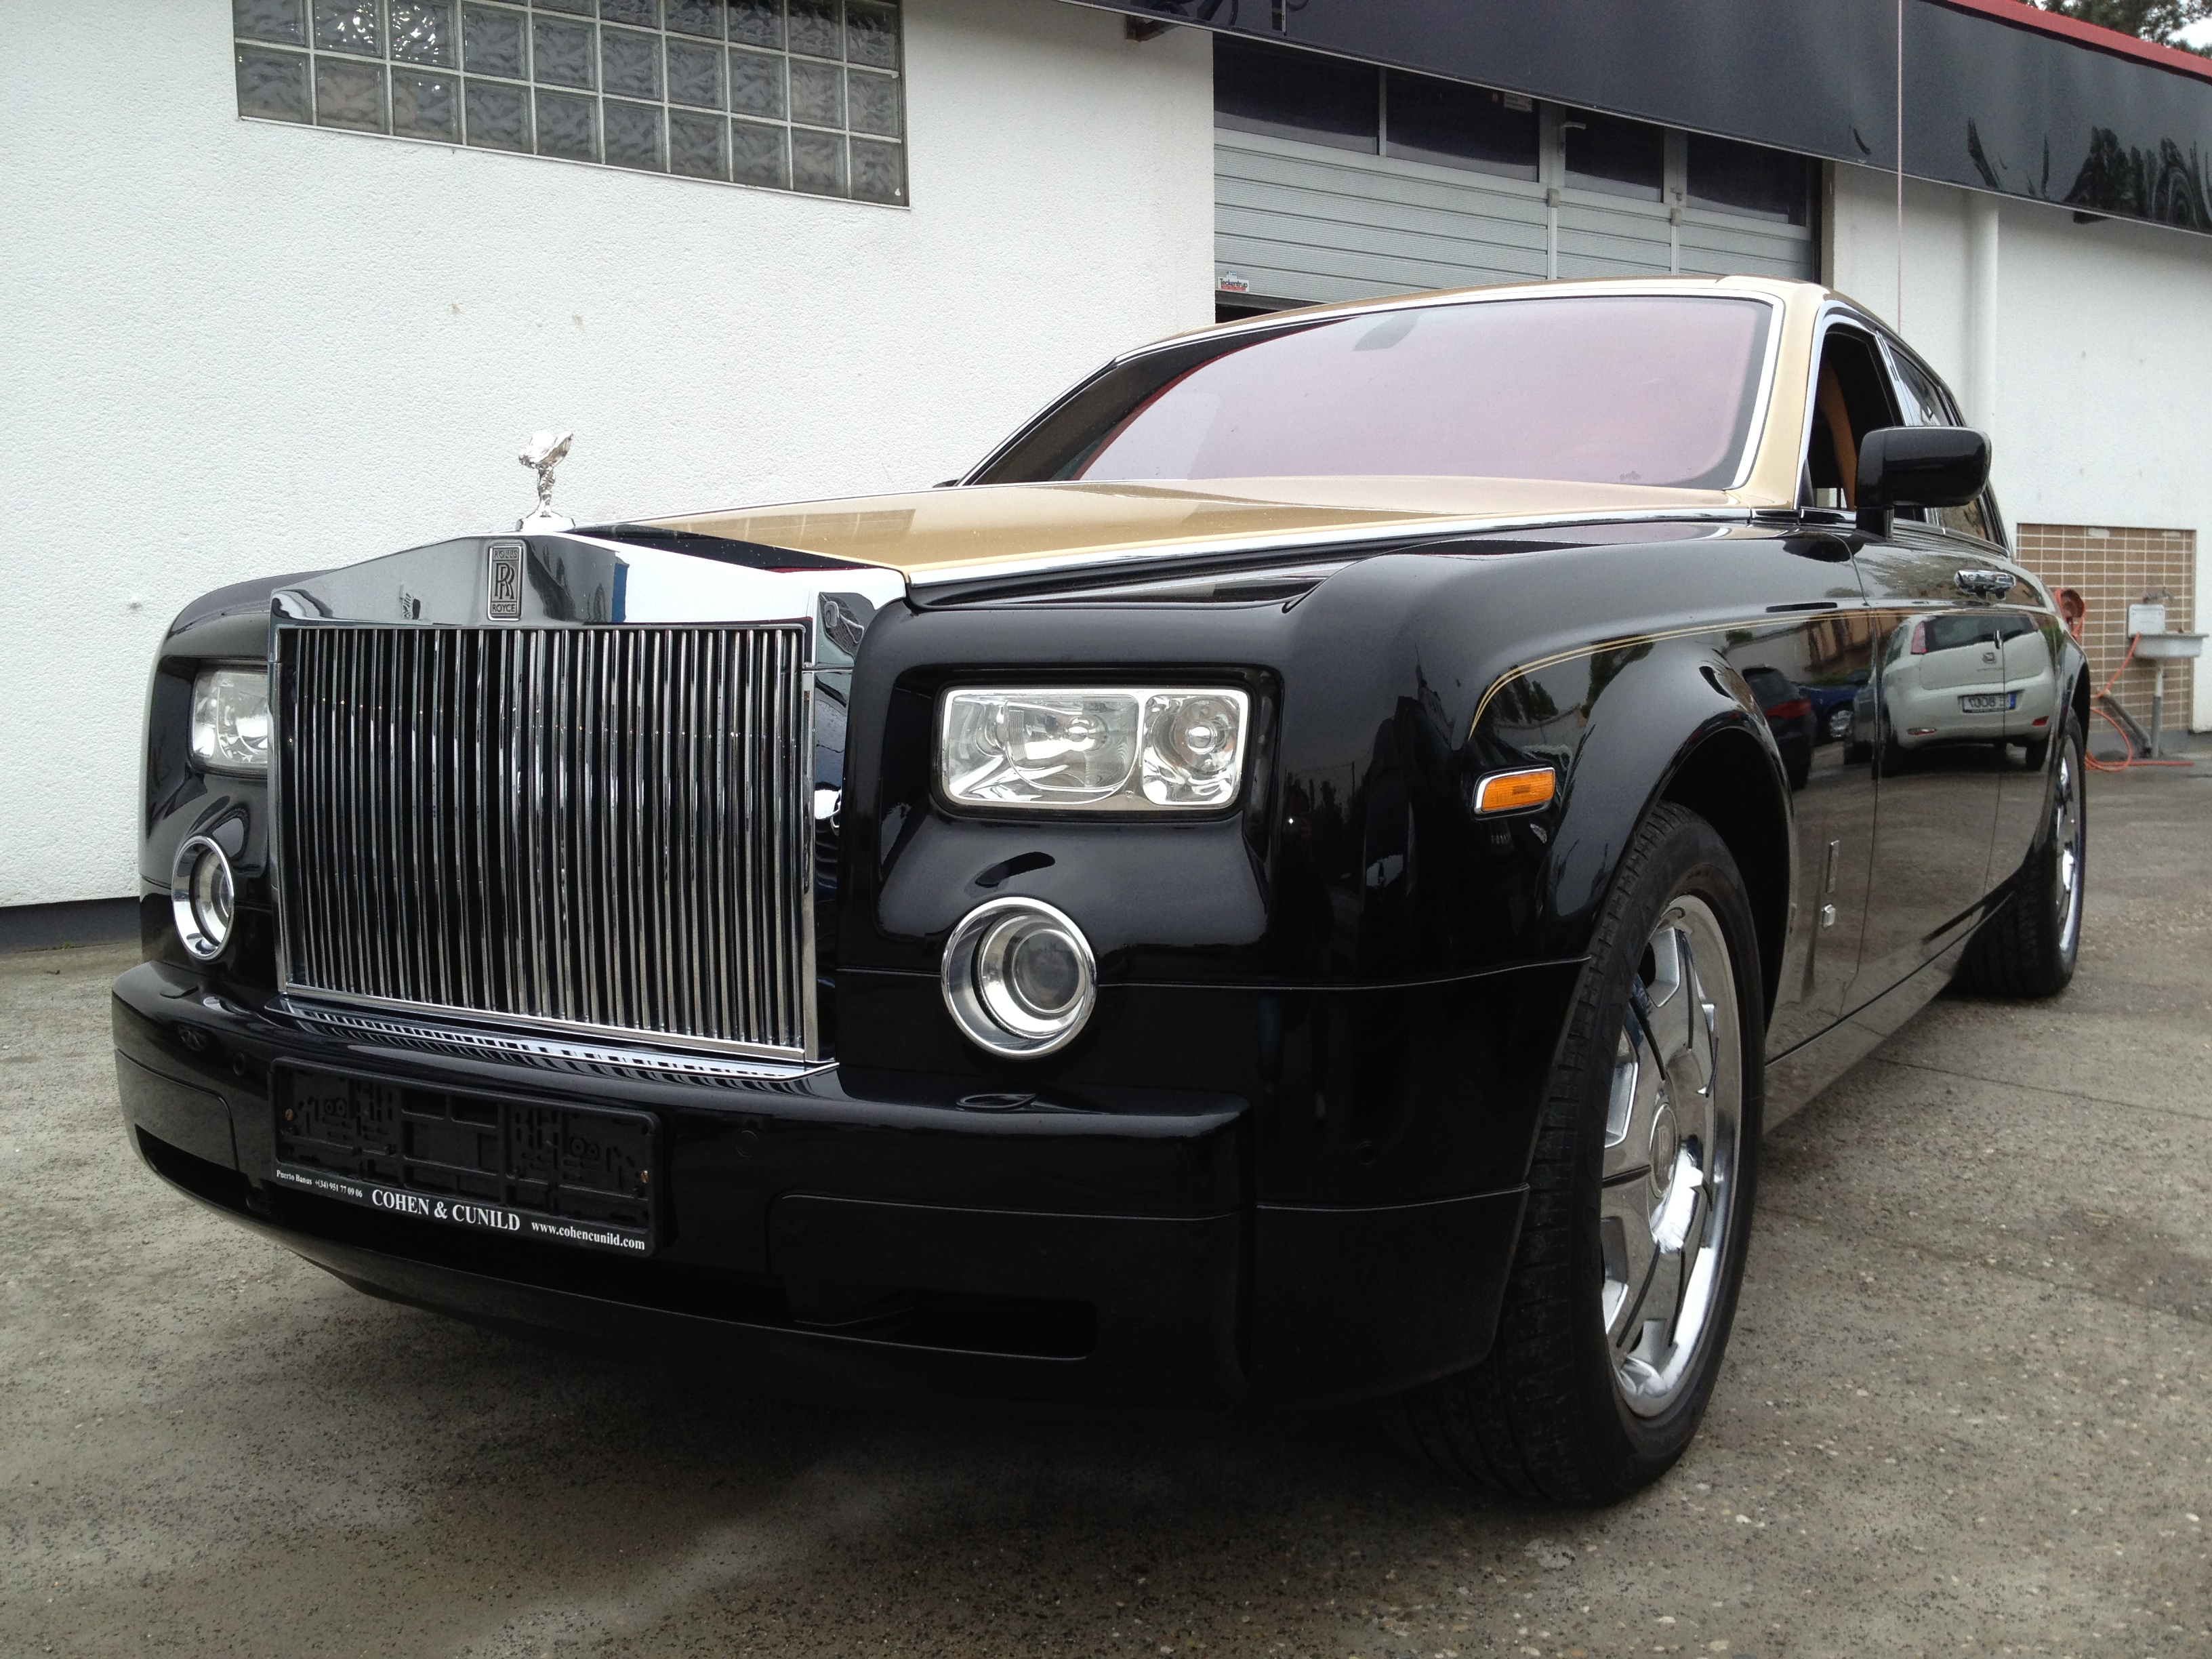 rolls royce phantom karosserie autolackiererei. Black Bedroom Furniture Sets. Home Design Ideas